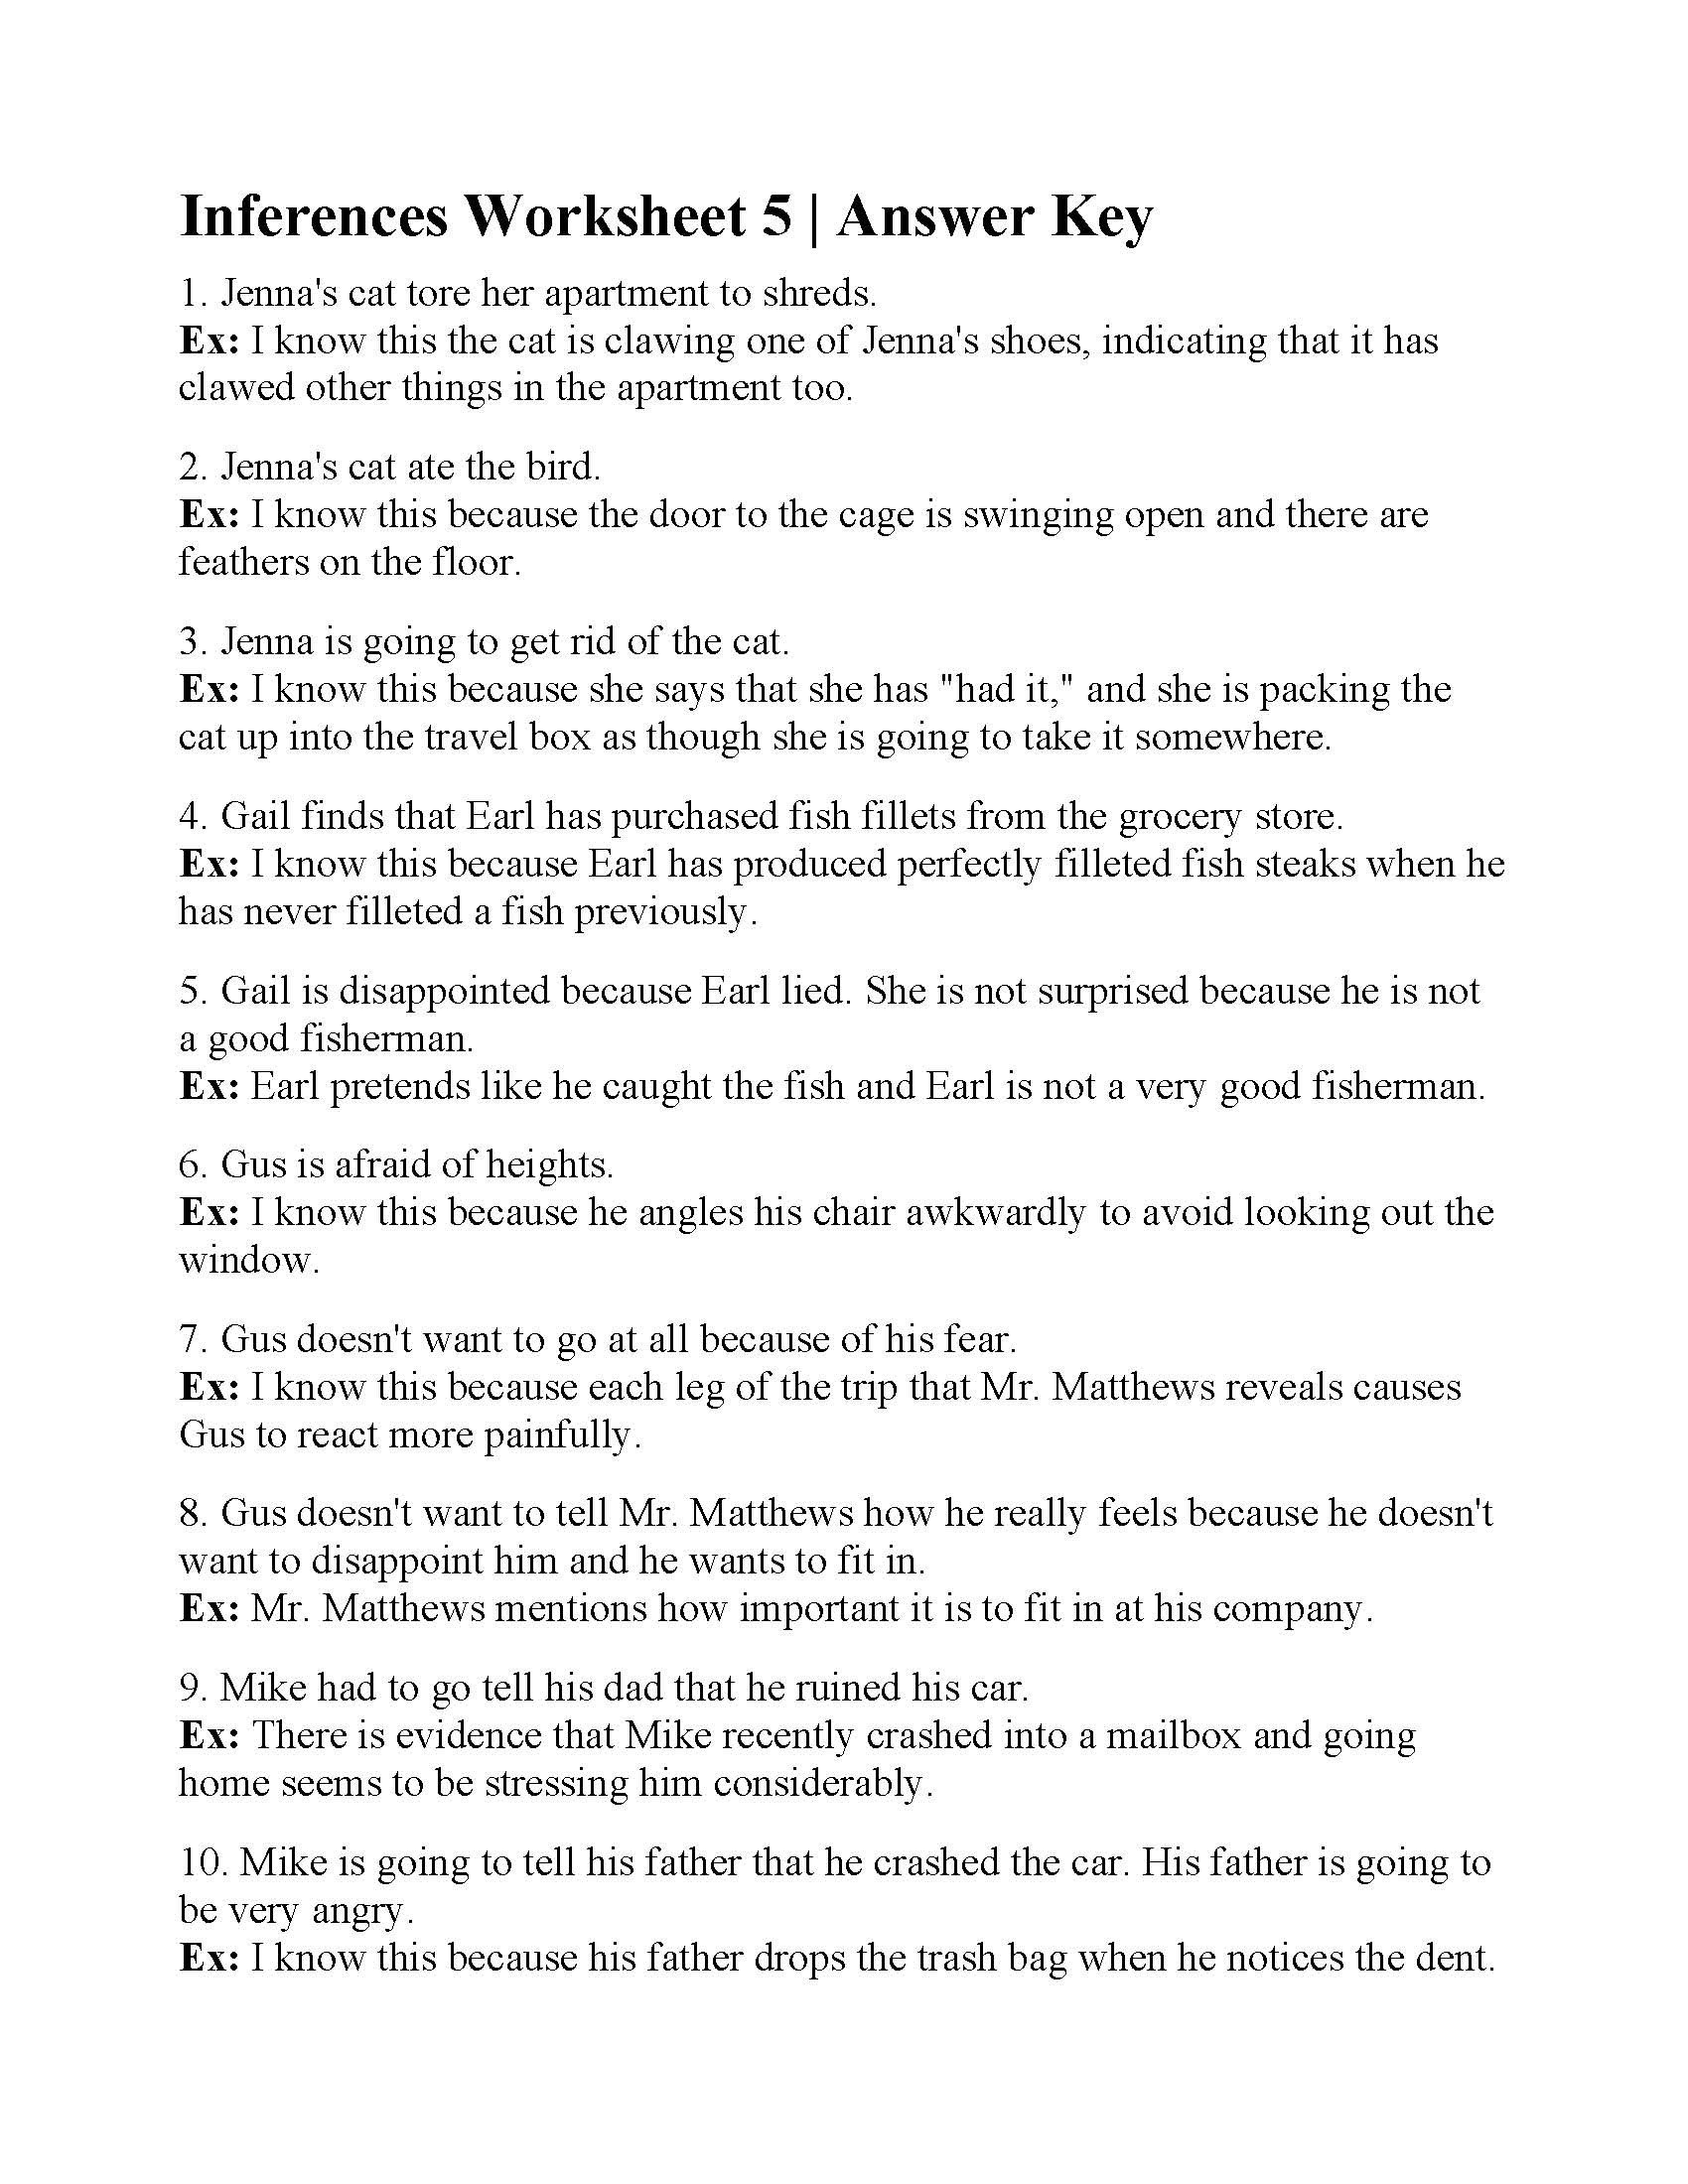 Social Inferences Worksheets Hiddenfashionhistory Page 2 Multiplication Worksheets